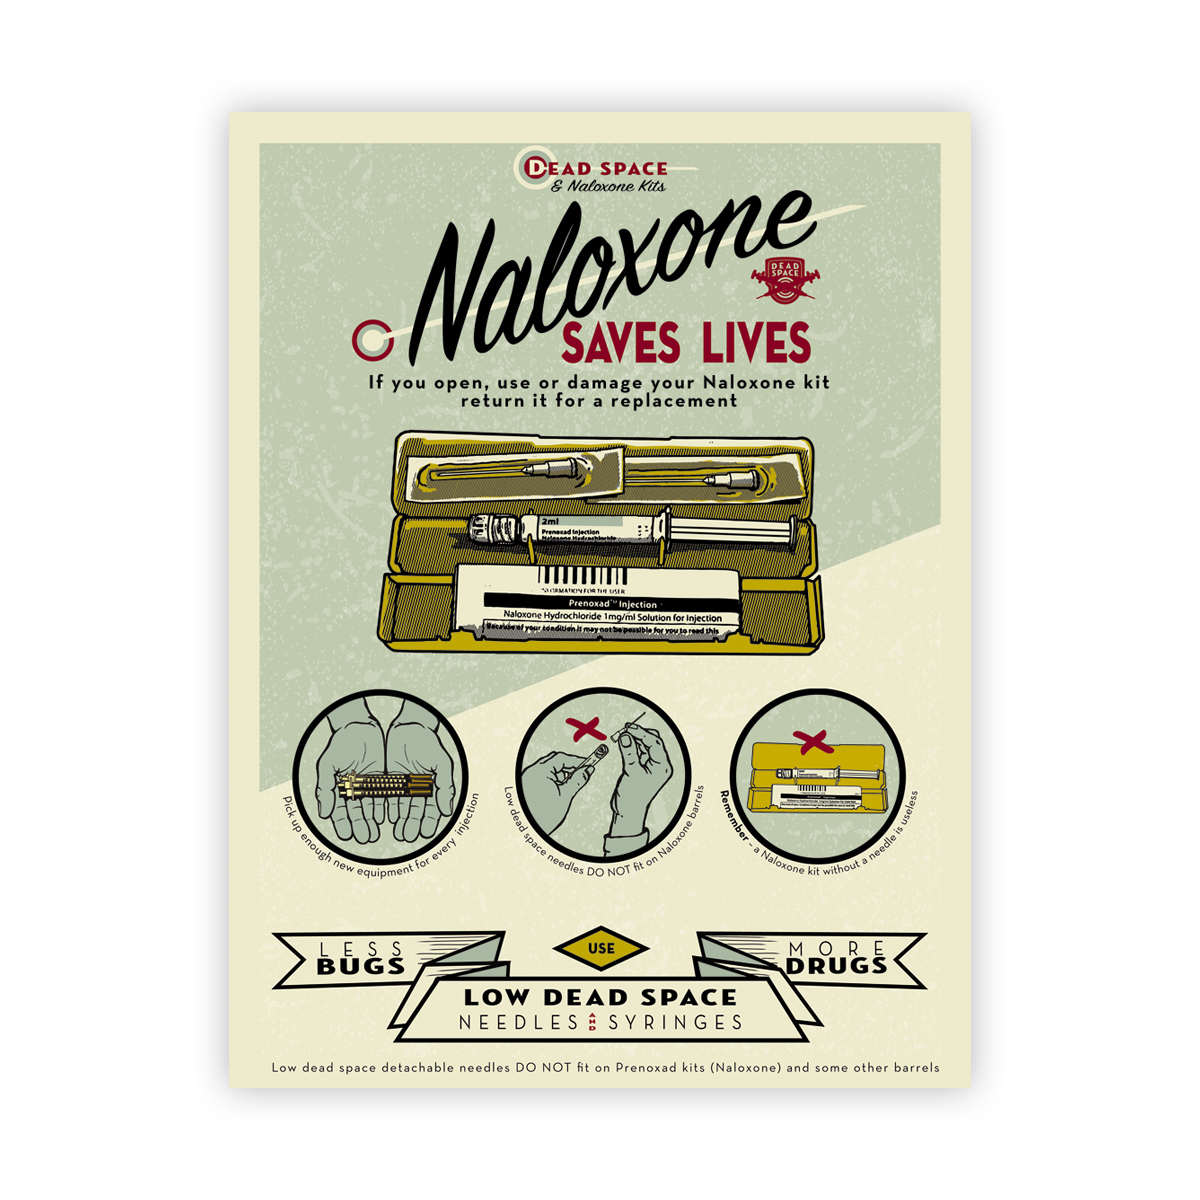 Naloxone saves lives poster